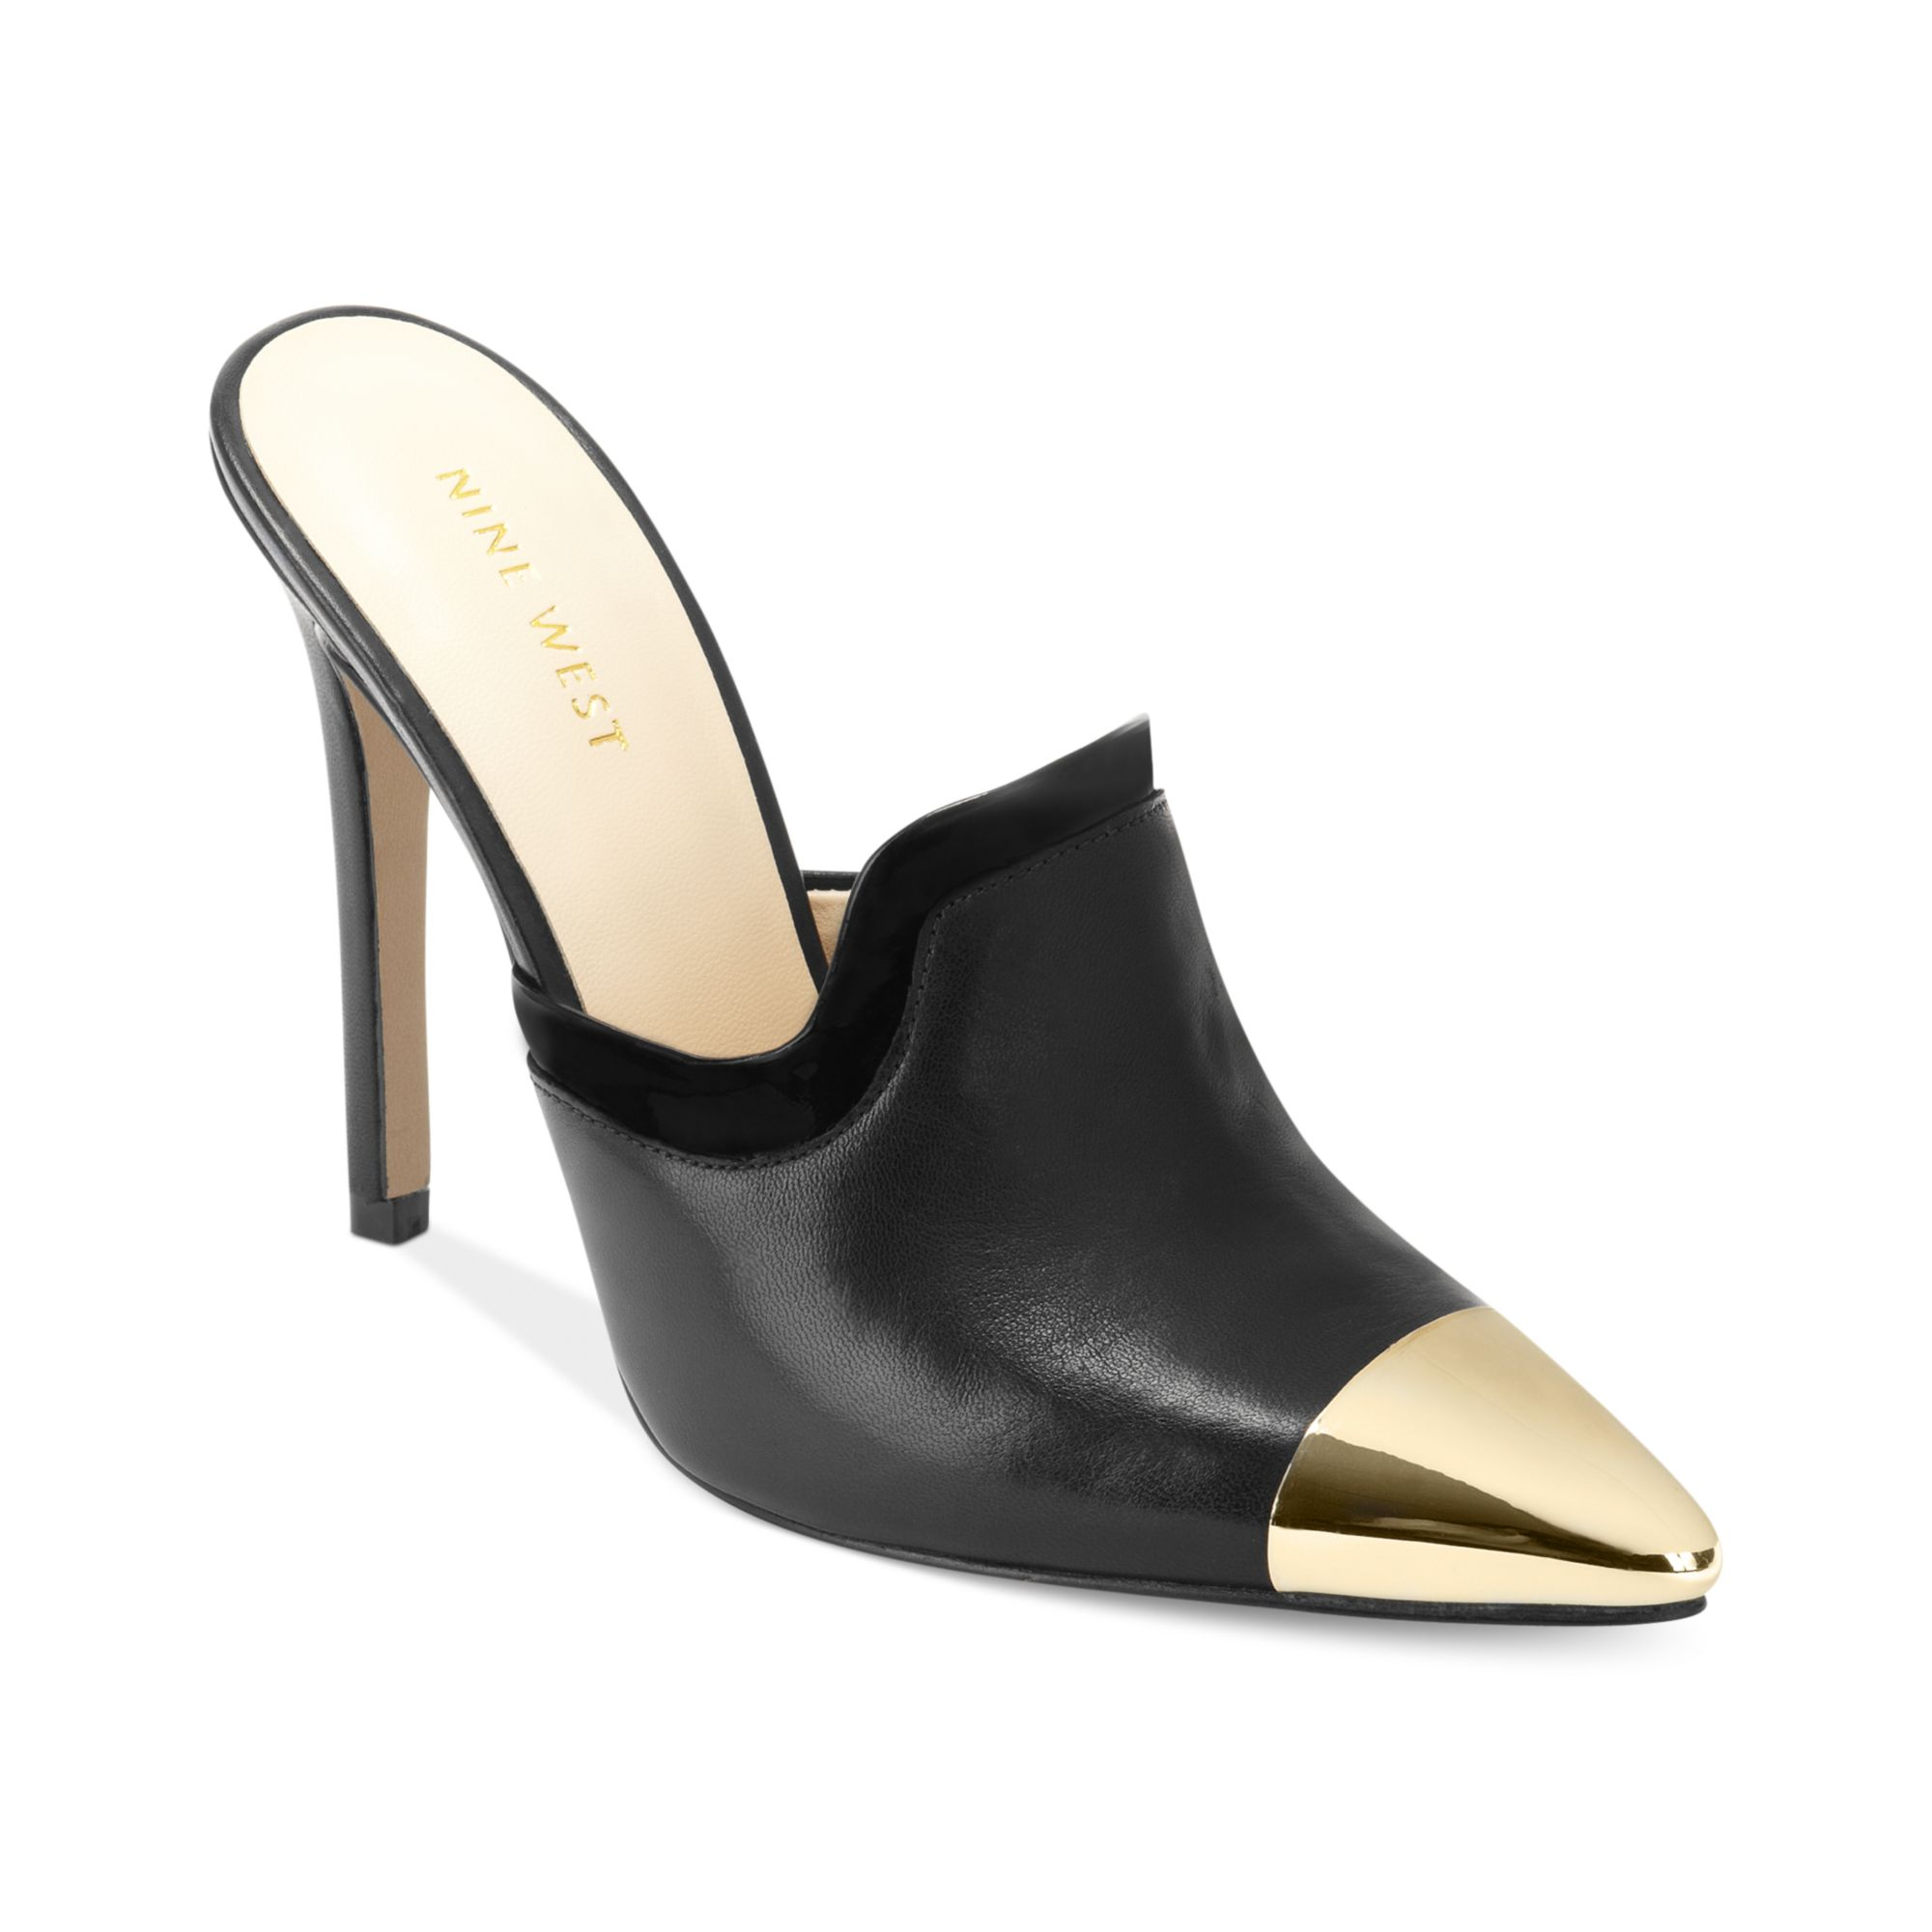 Nine west Girlface Mules in Black